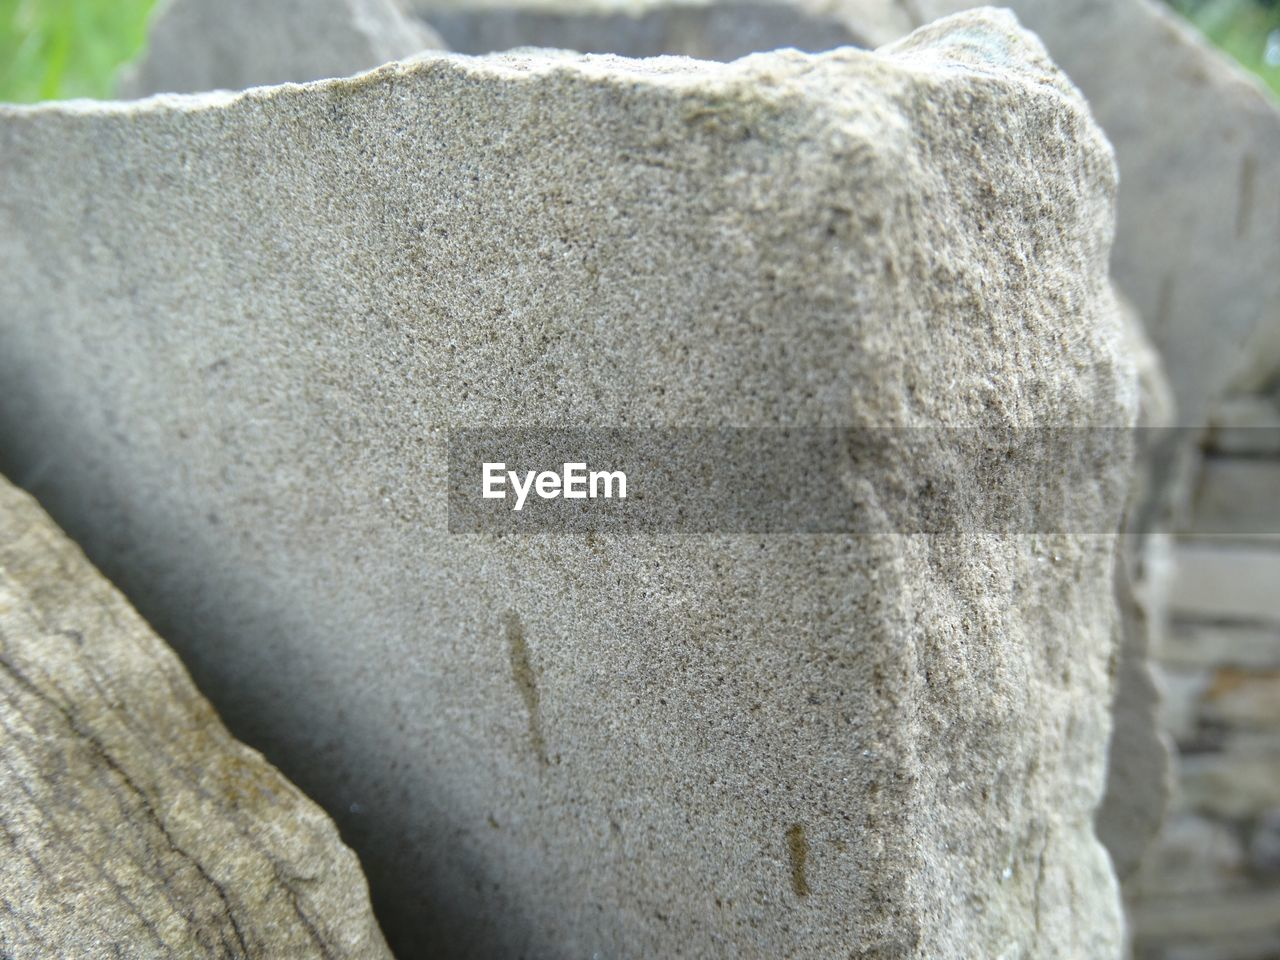 textured, day, close-up, no people, rough, outdoors, focus on foreground, rock - object, nature